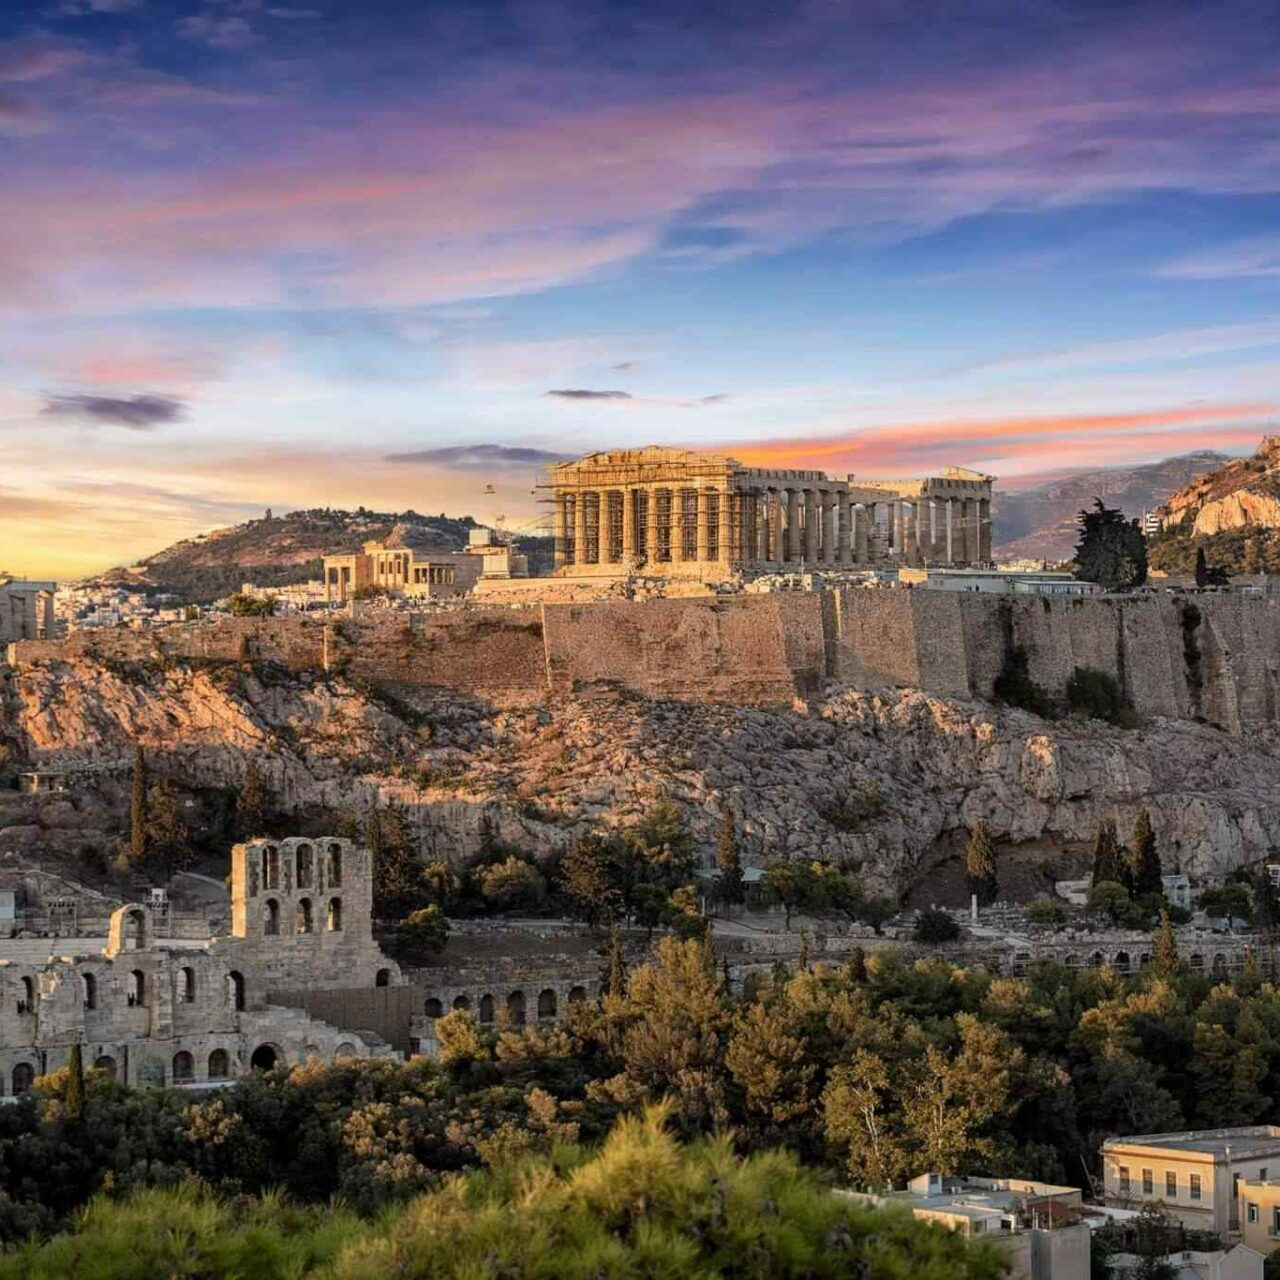 https://media.putovanjepomeri.com/2018/09/destination-athens-01-1280x1280.jpg